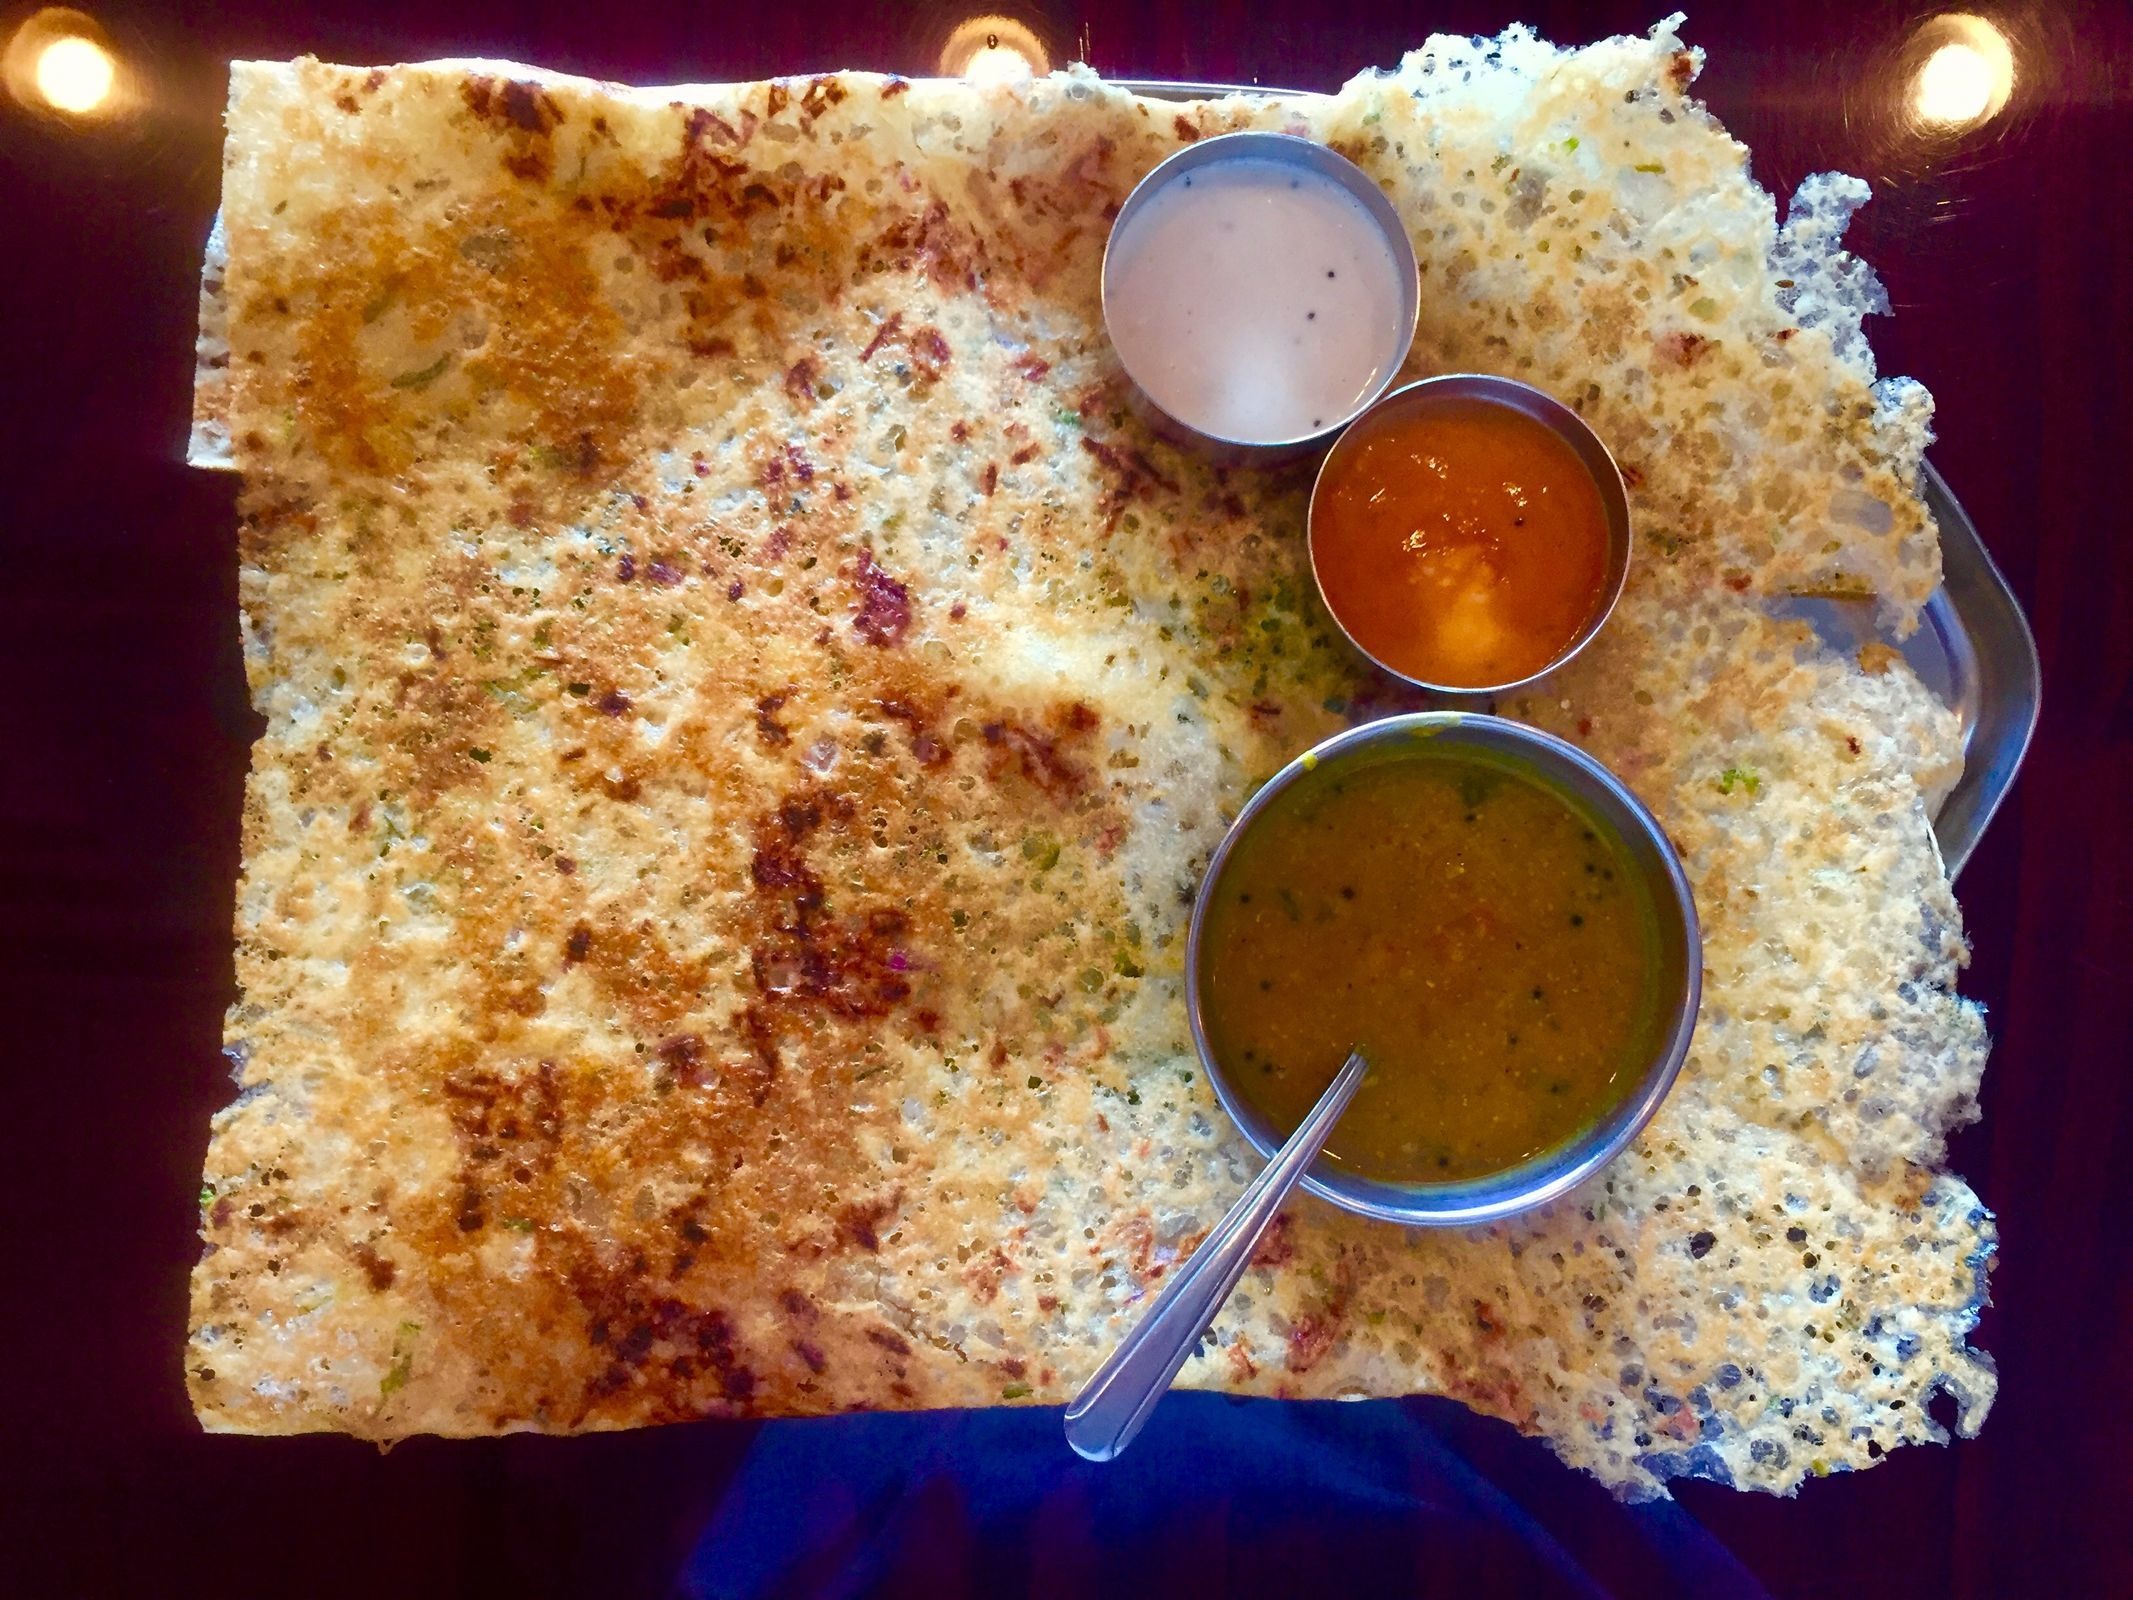 The onion rava dosa at Amma's South Indian Cuisine in Voorhees. (CRAIG LABAN / Staff)